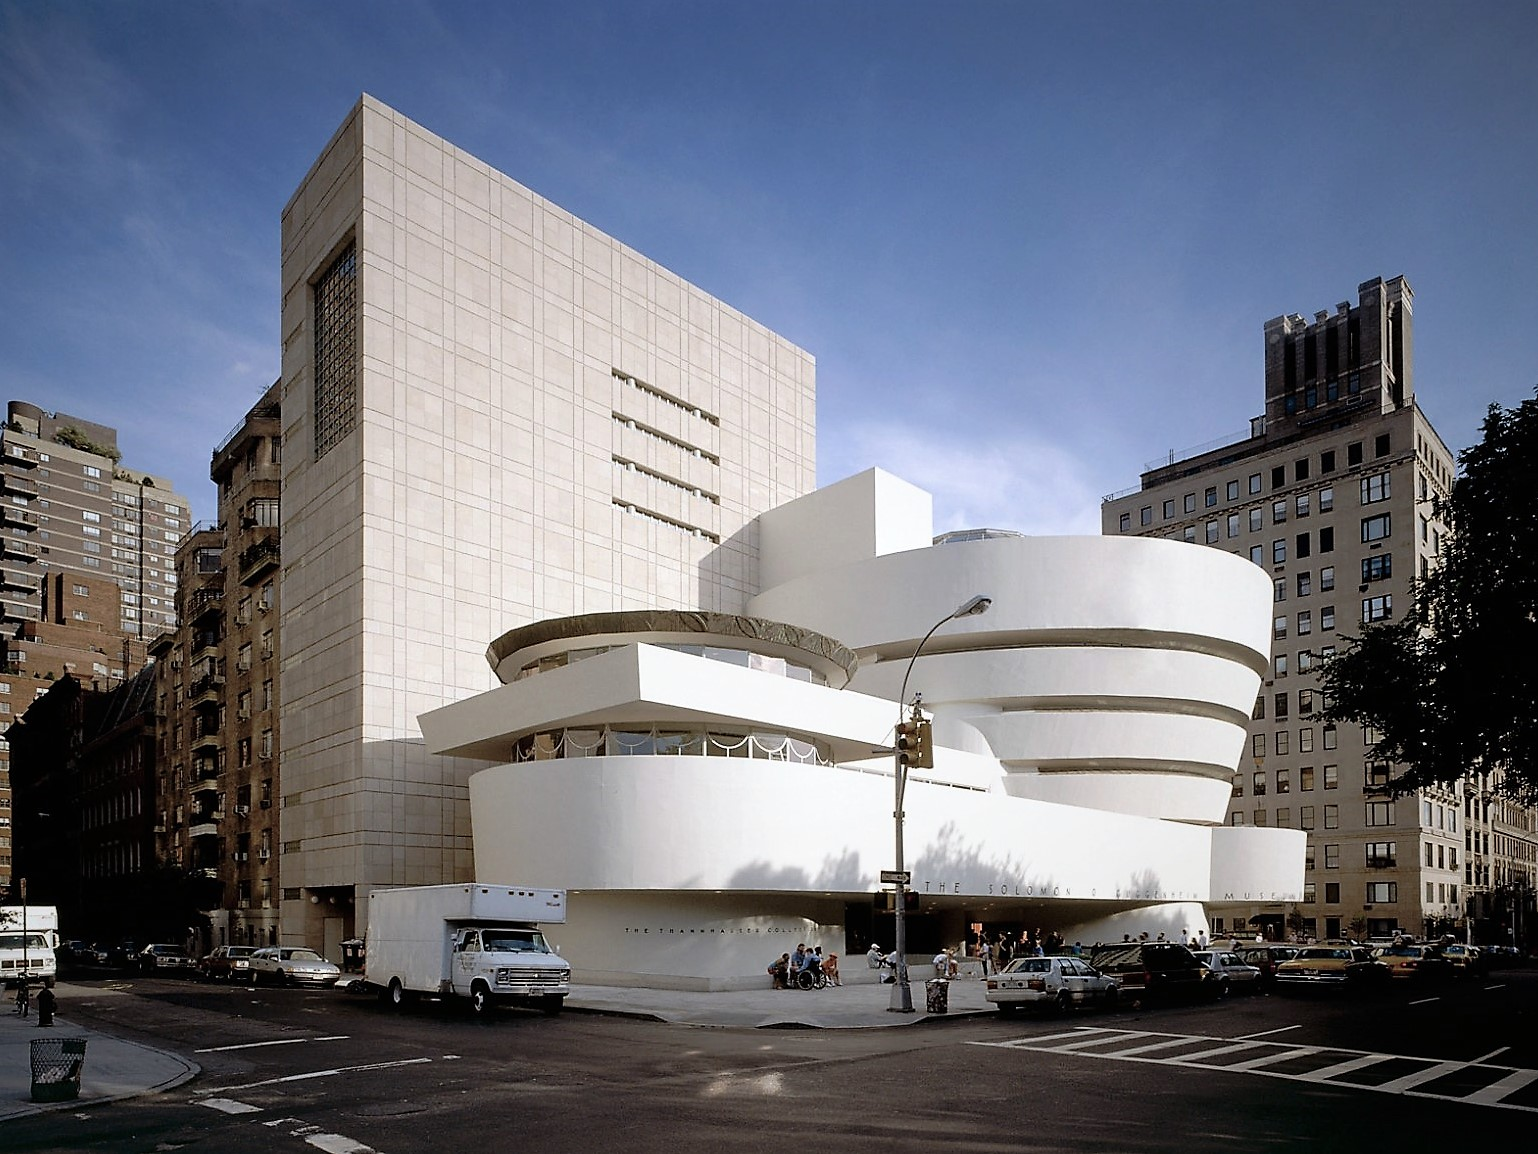 Guggenheim Musum New York